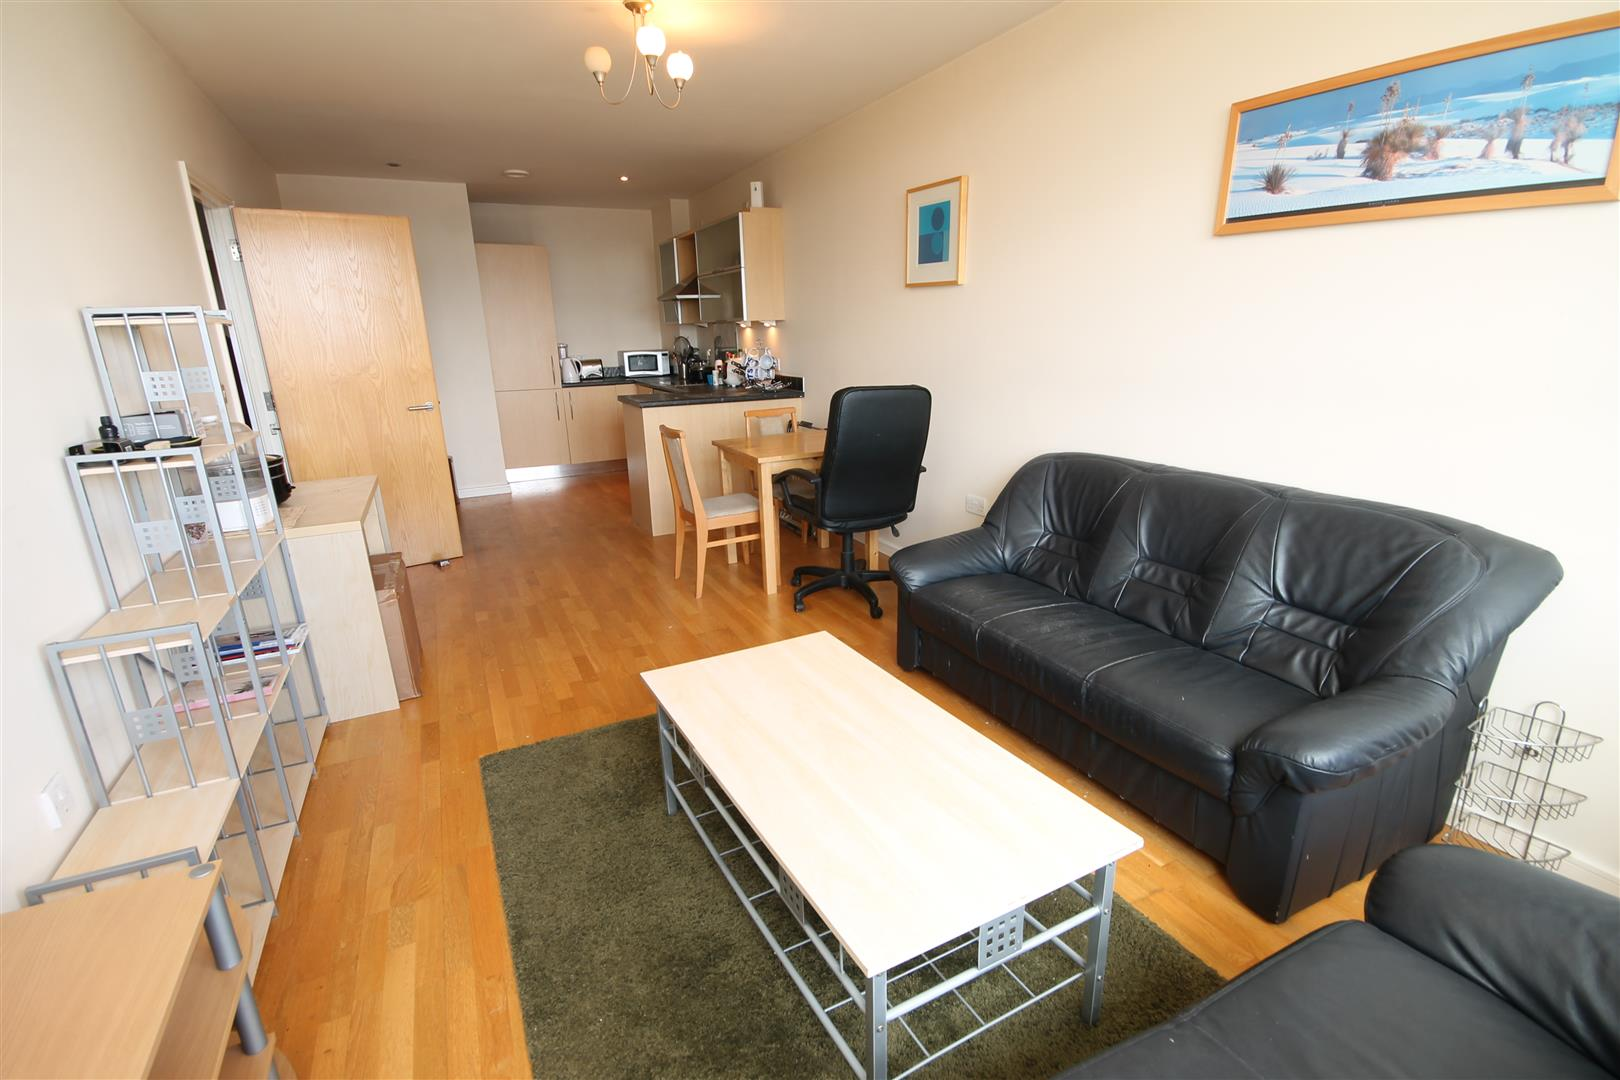 55 Degrees North Newcastle Upon Tyne, 2 Bedrooms  Apartment ,For Sale